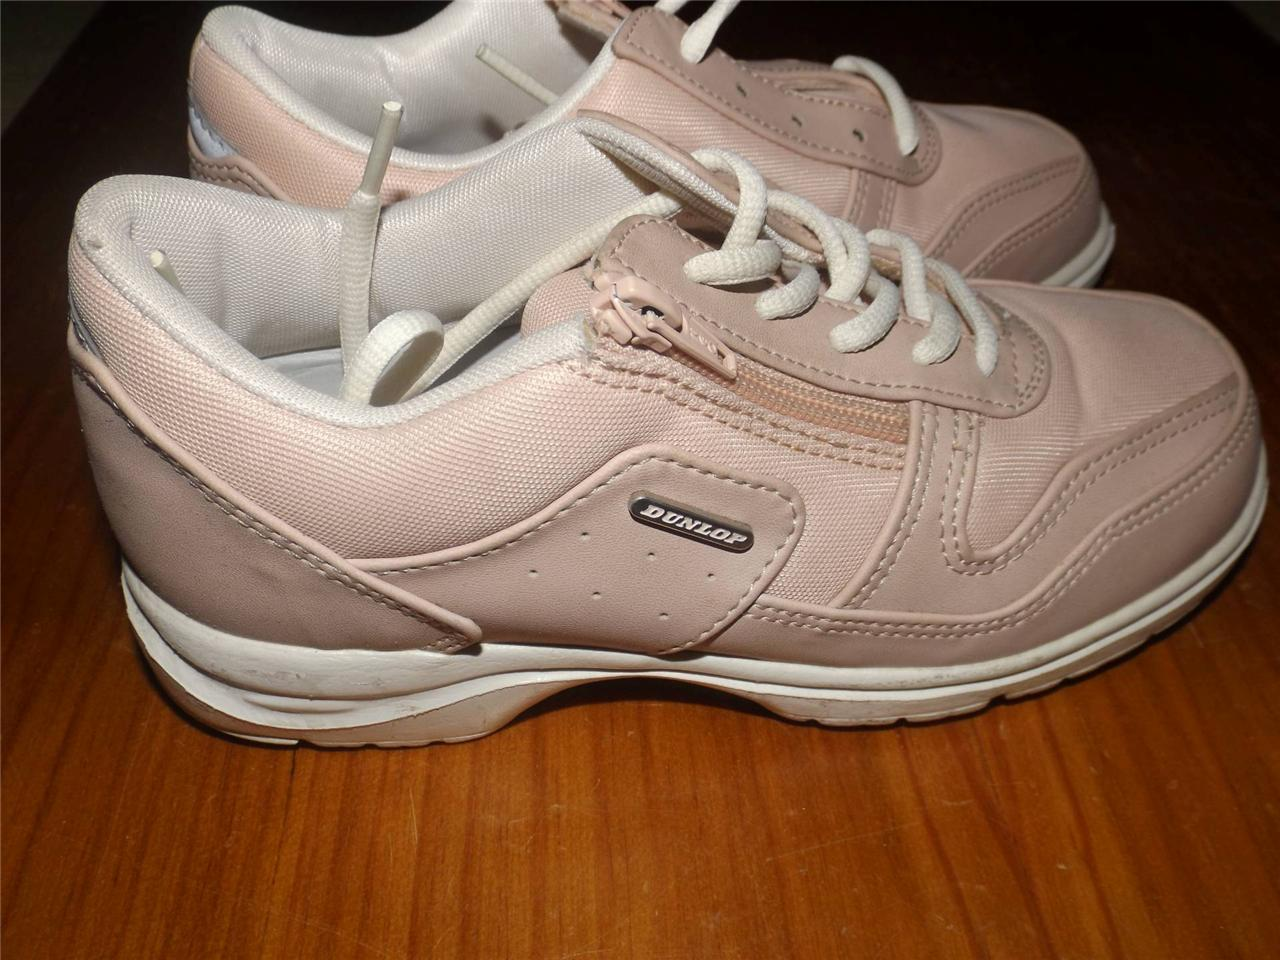 Brand-New-Dunlop-women-girls-shoes-joggers-comfort-walkers-pink-Aus-5-5-6-6-5